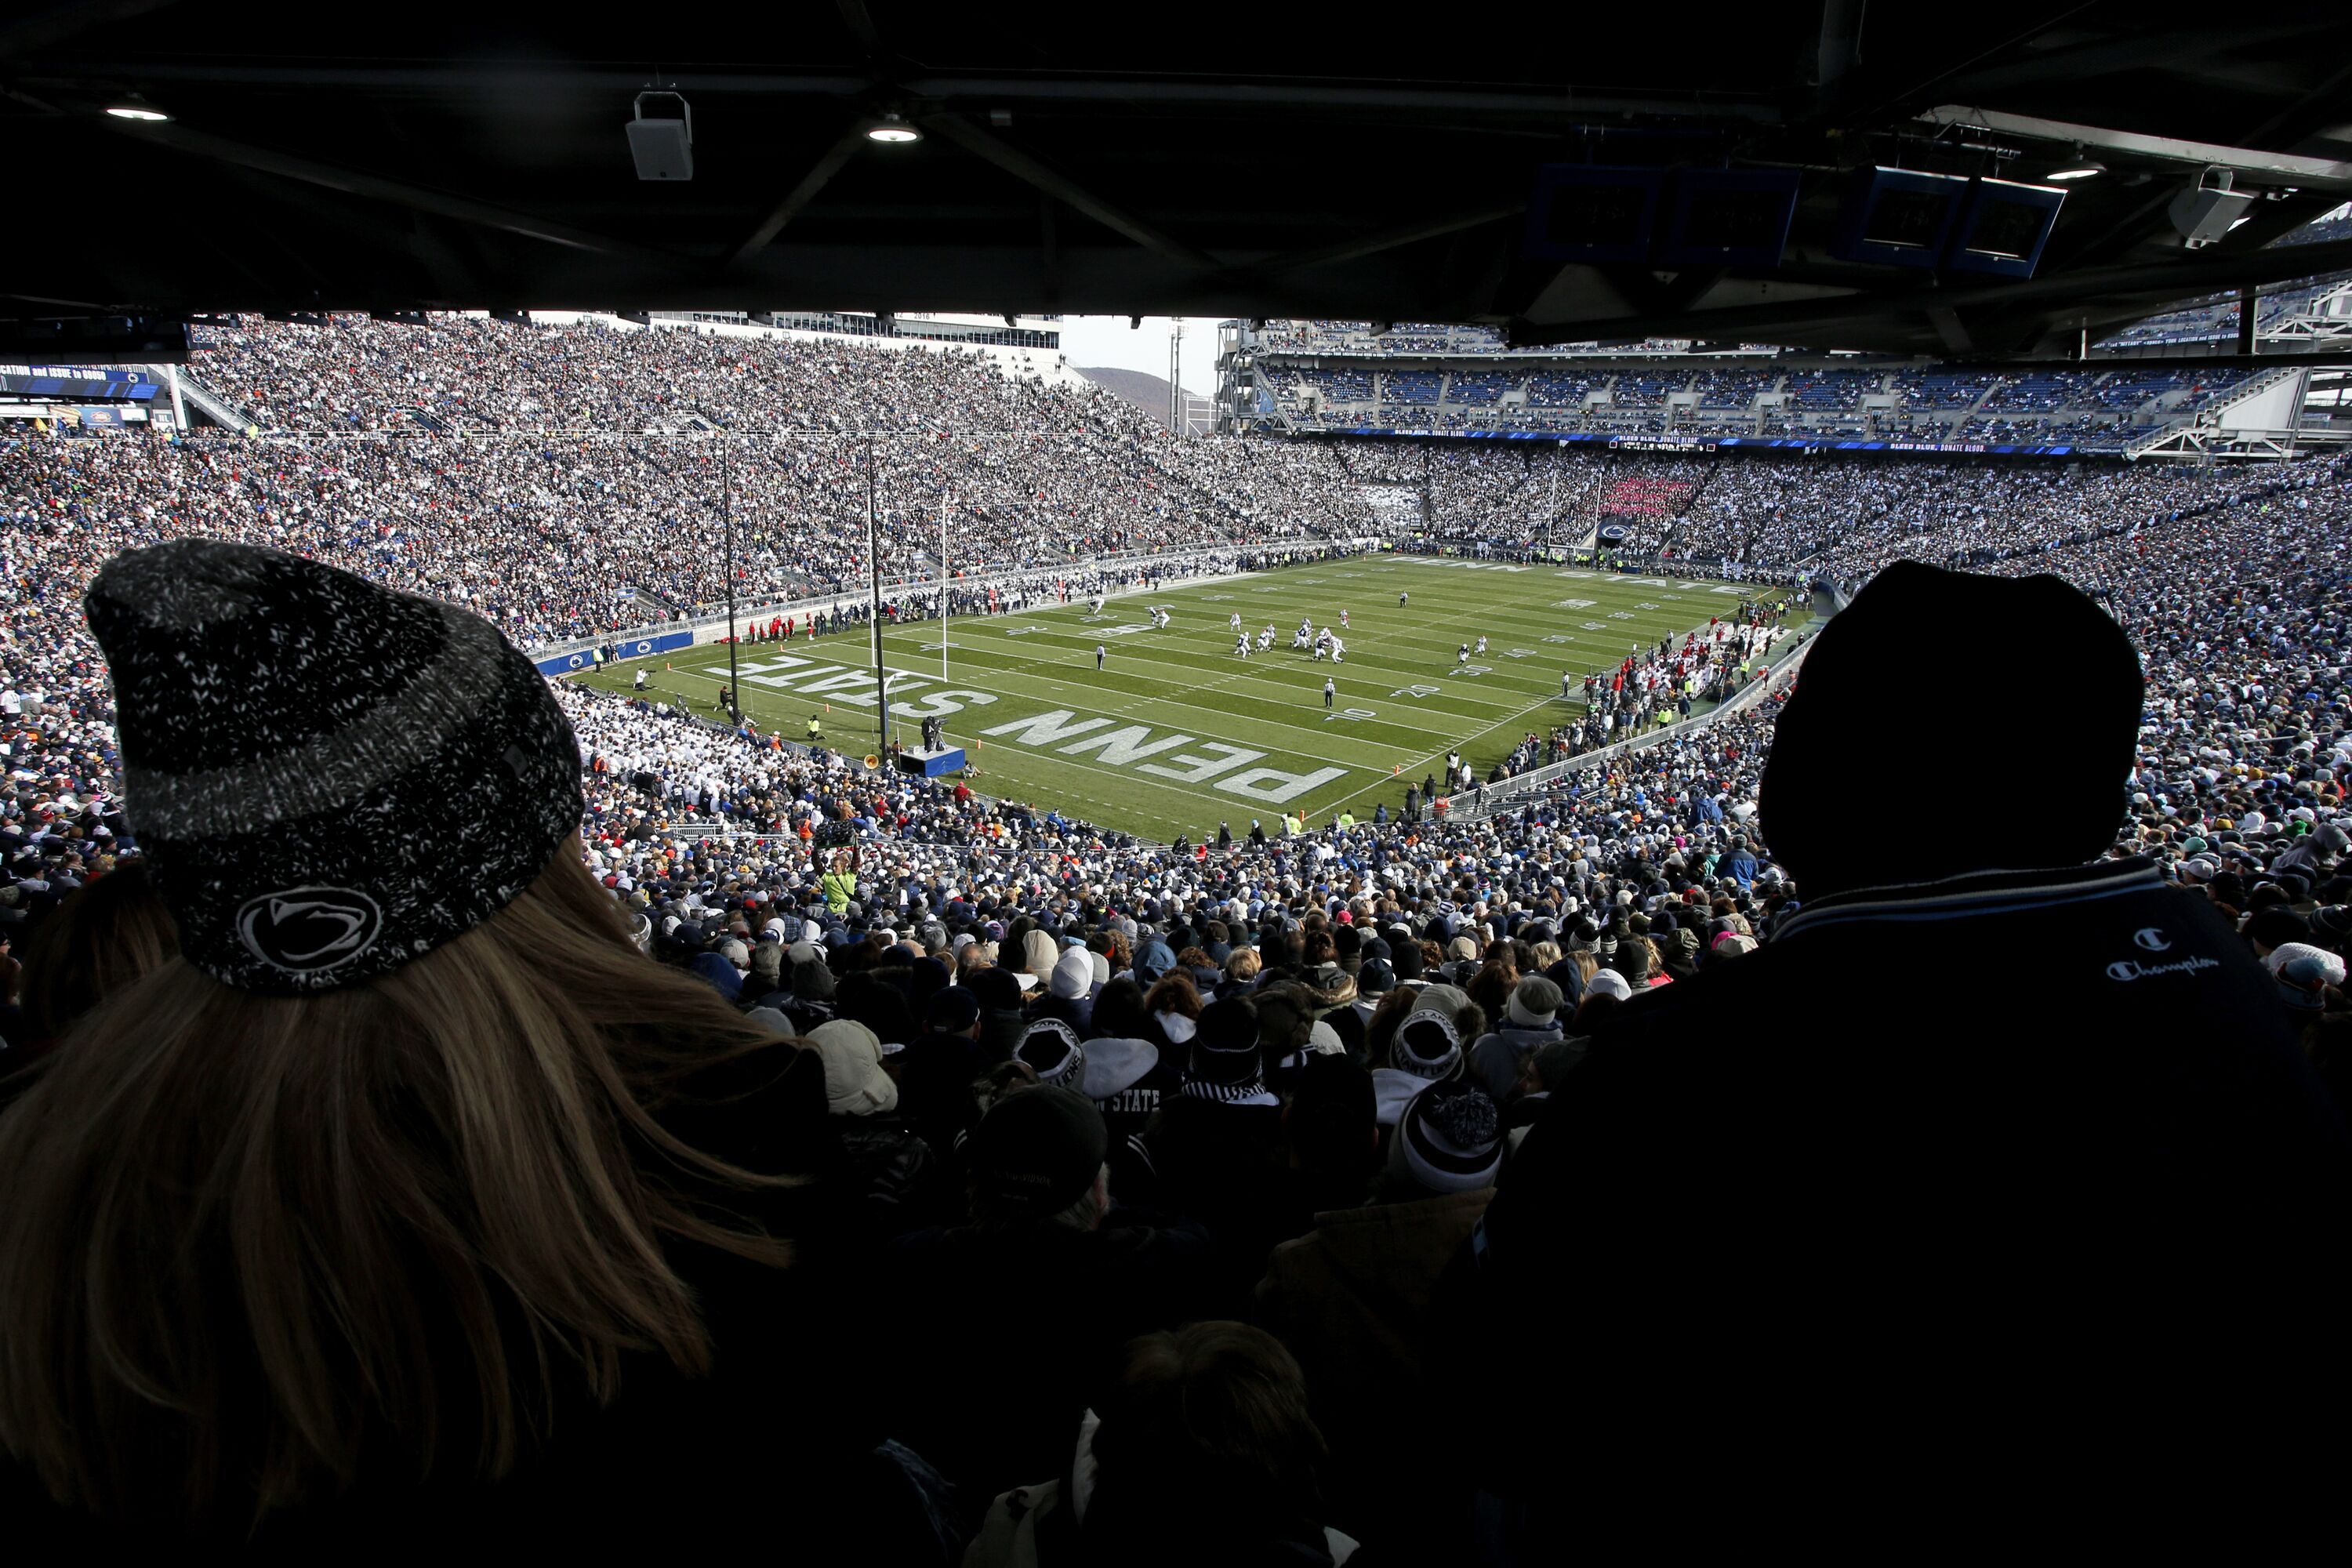 Penn State Football: Keaton Ellis could make an early impact at cornerback